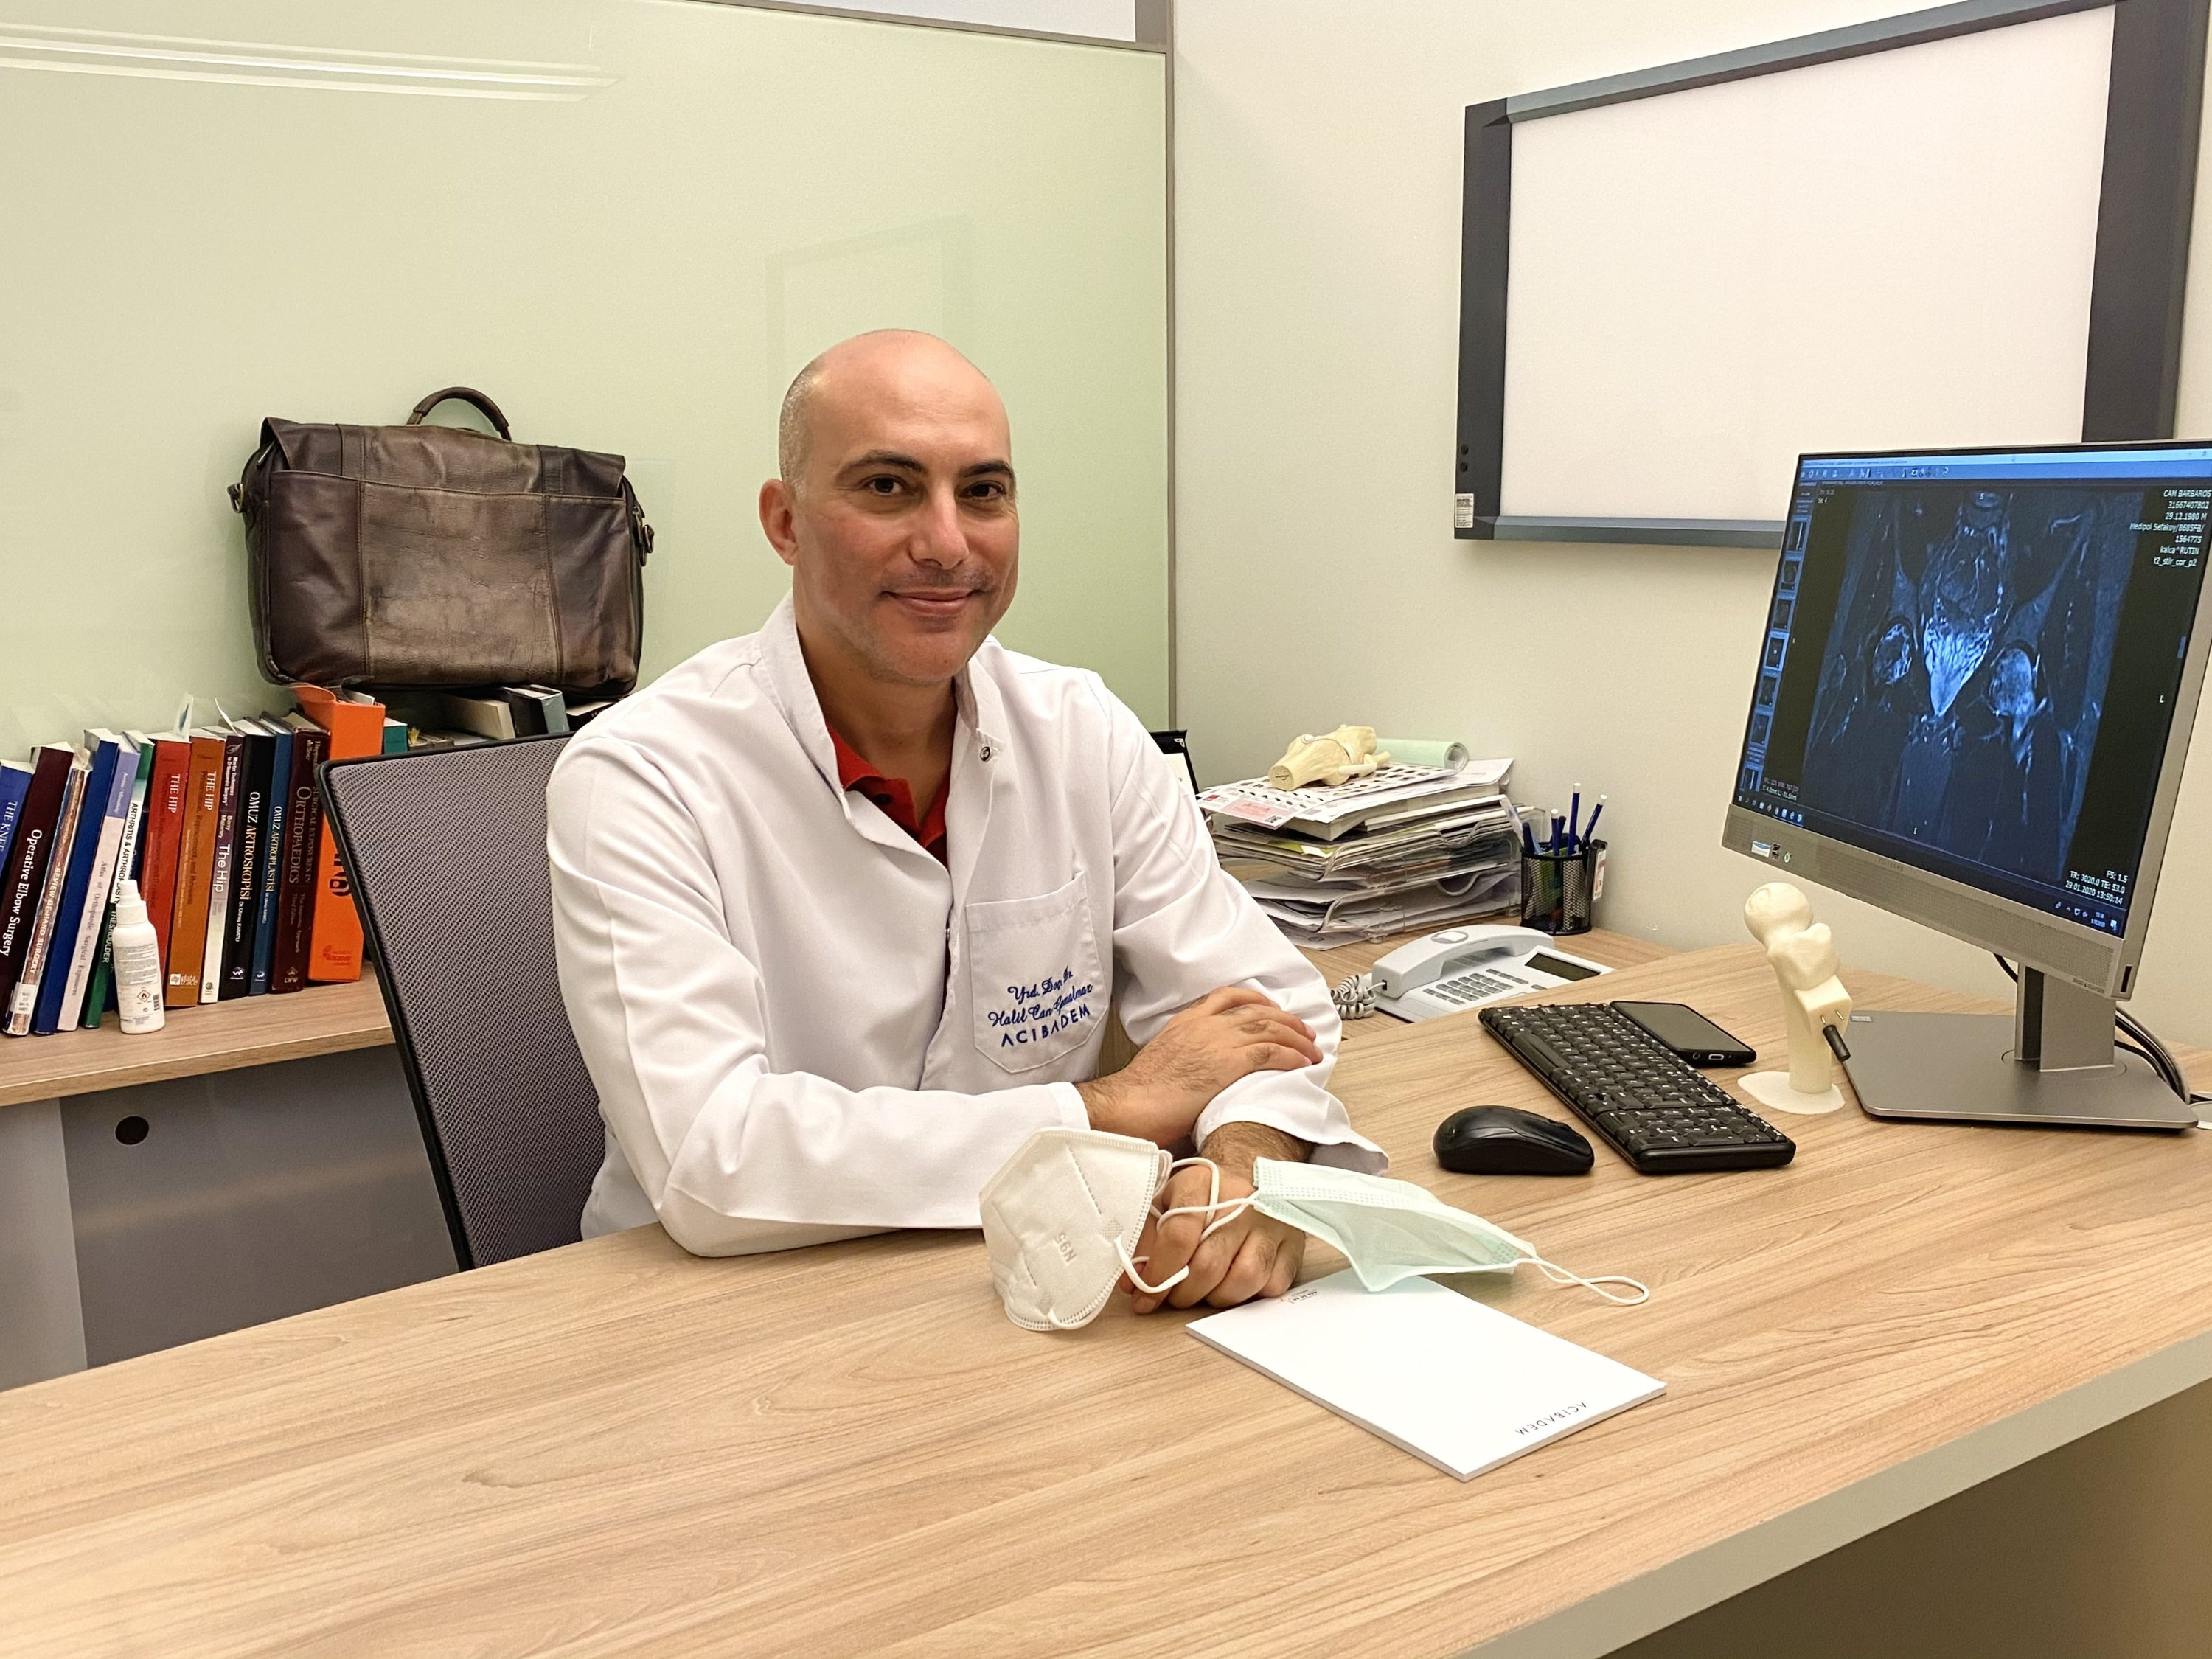 Associate professor Halil Can Gemalmaz poses for a photo at Acıbadem Hospital, in Istanbul, Turkey, Dec. 29, 2020. (DailySabah Photo)